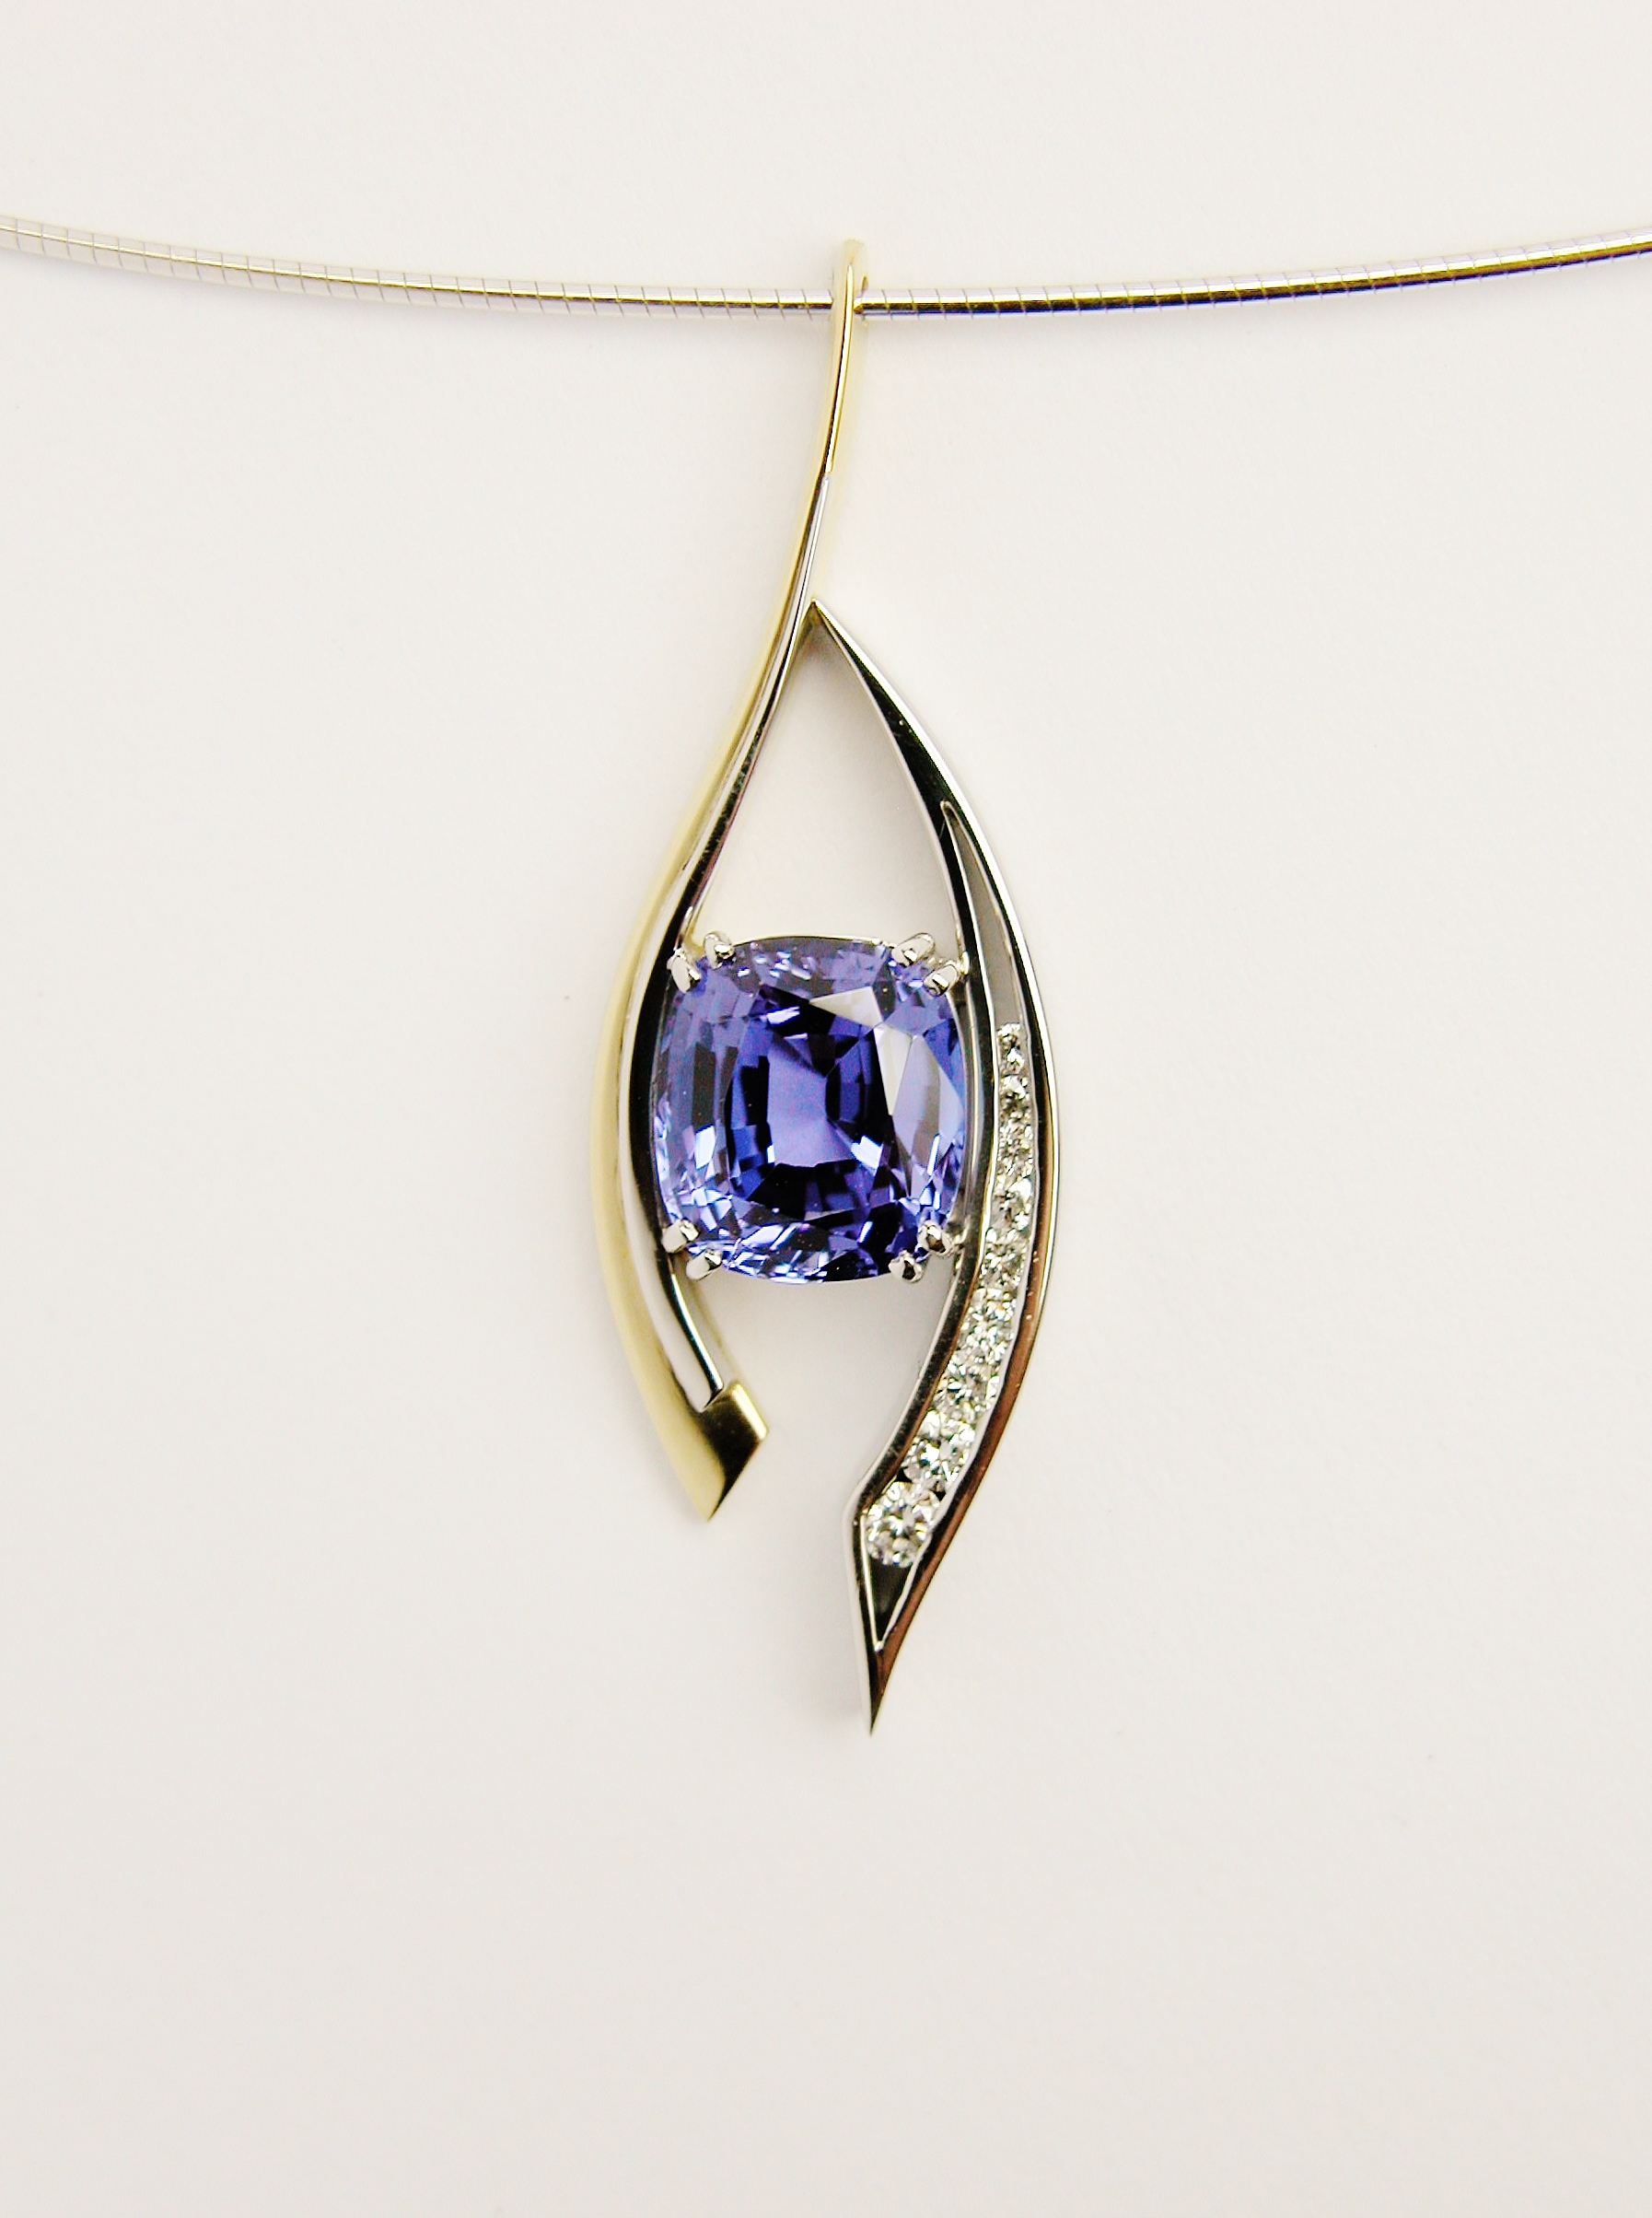 Cushion shaped Tanzanite and round brilliant cut diamond open pendulum pendant set in 18ct. yellow gold 2c palladium & platinum.